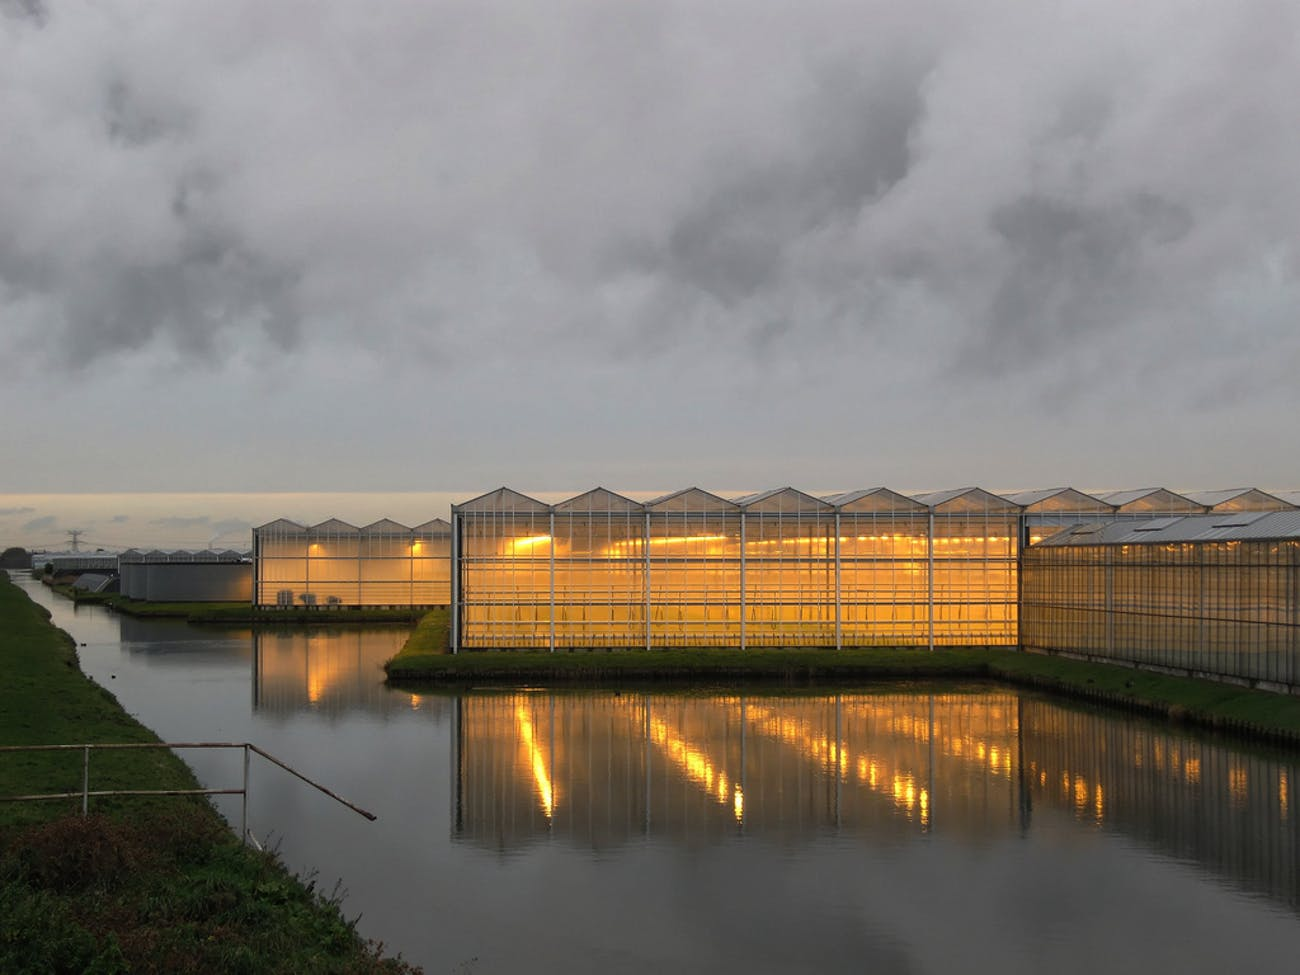 Netherlands greenhouses.